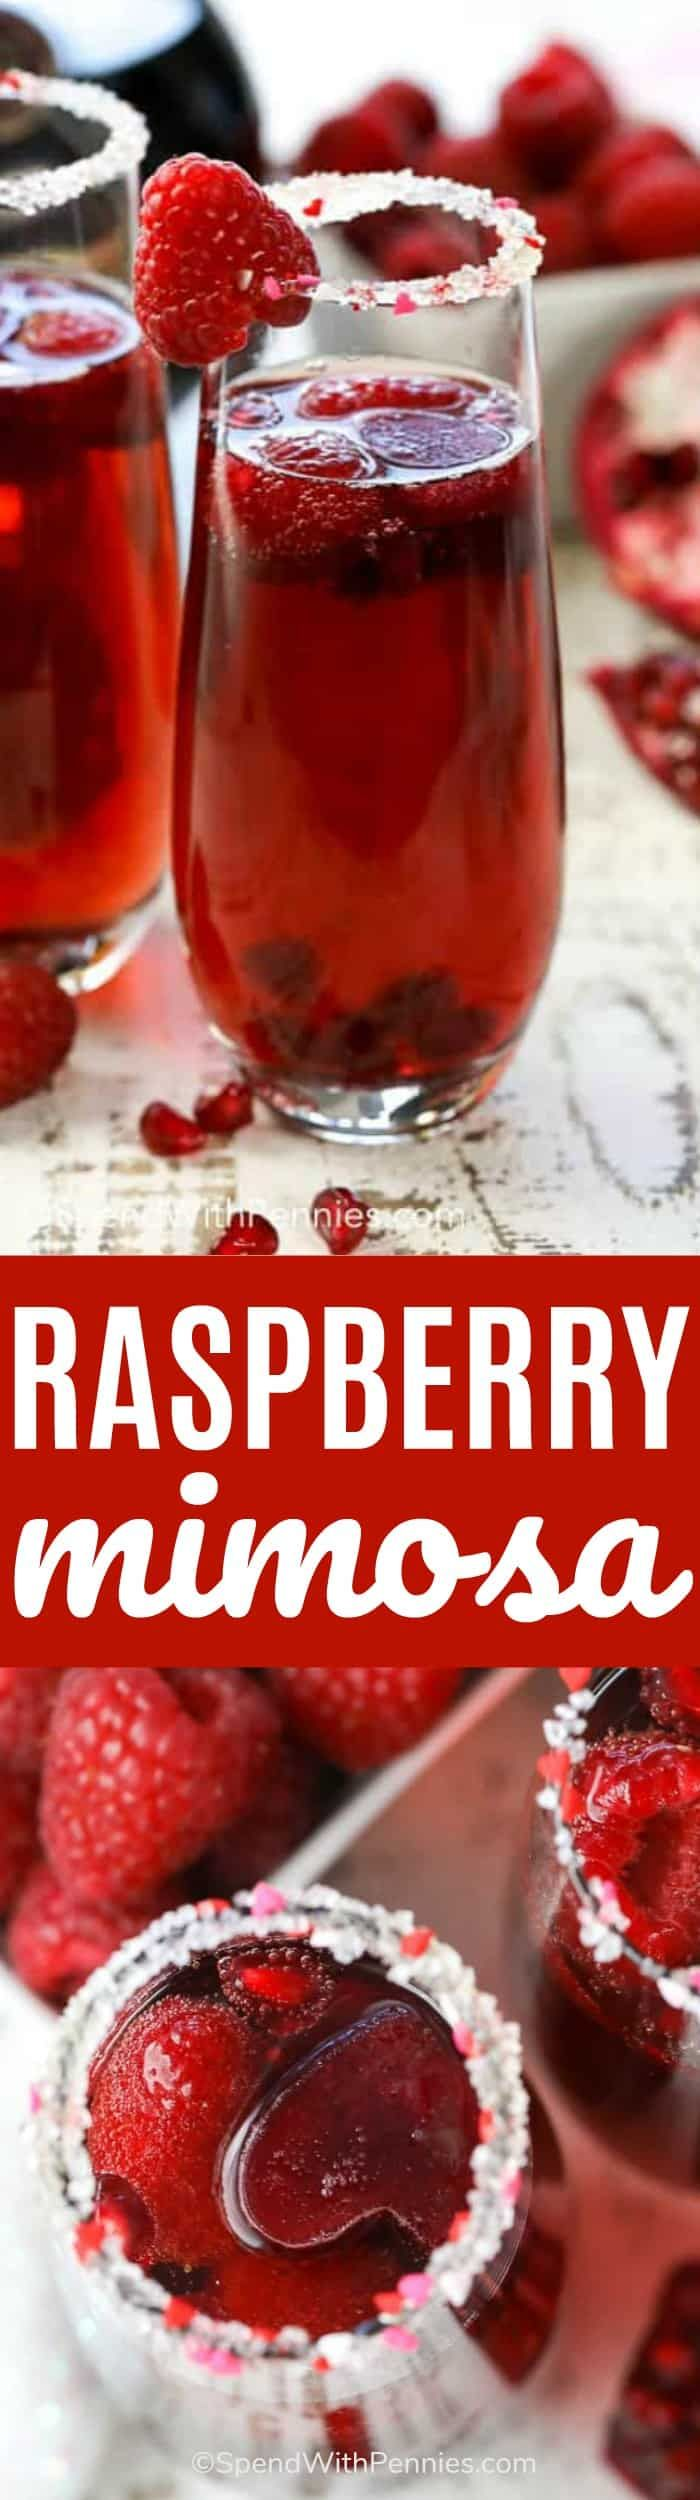 Raspberry Mimosa is made with raspberry liqueur and frosty pomegranate juice ice cubes topped with bubbly champagne or sparkling wine. This is perfect to enjoy with your hunny or to create a fun alcohol-free mocktail for the kids!  l